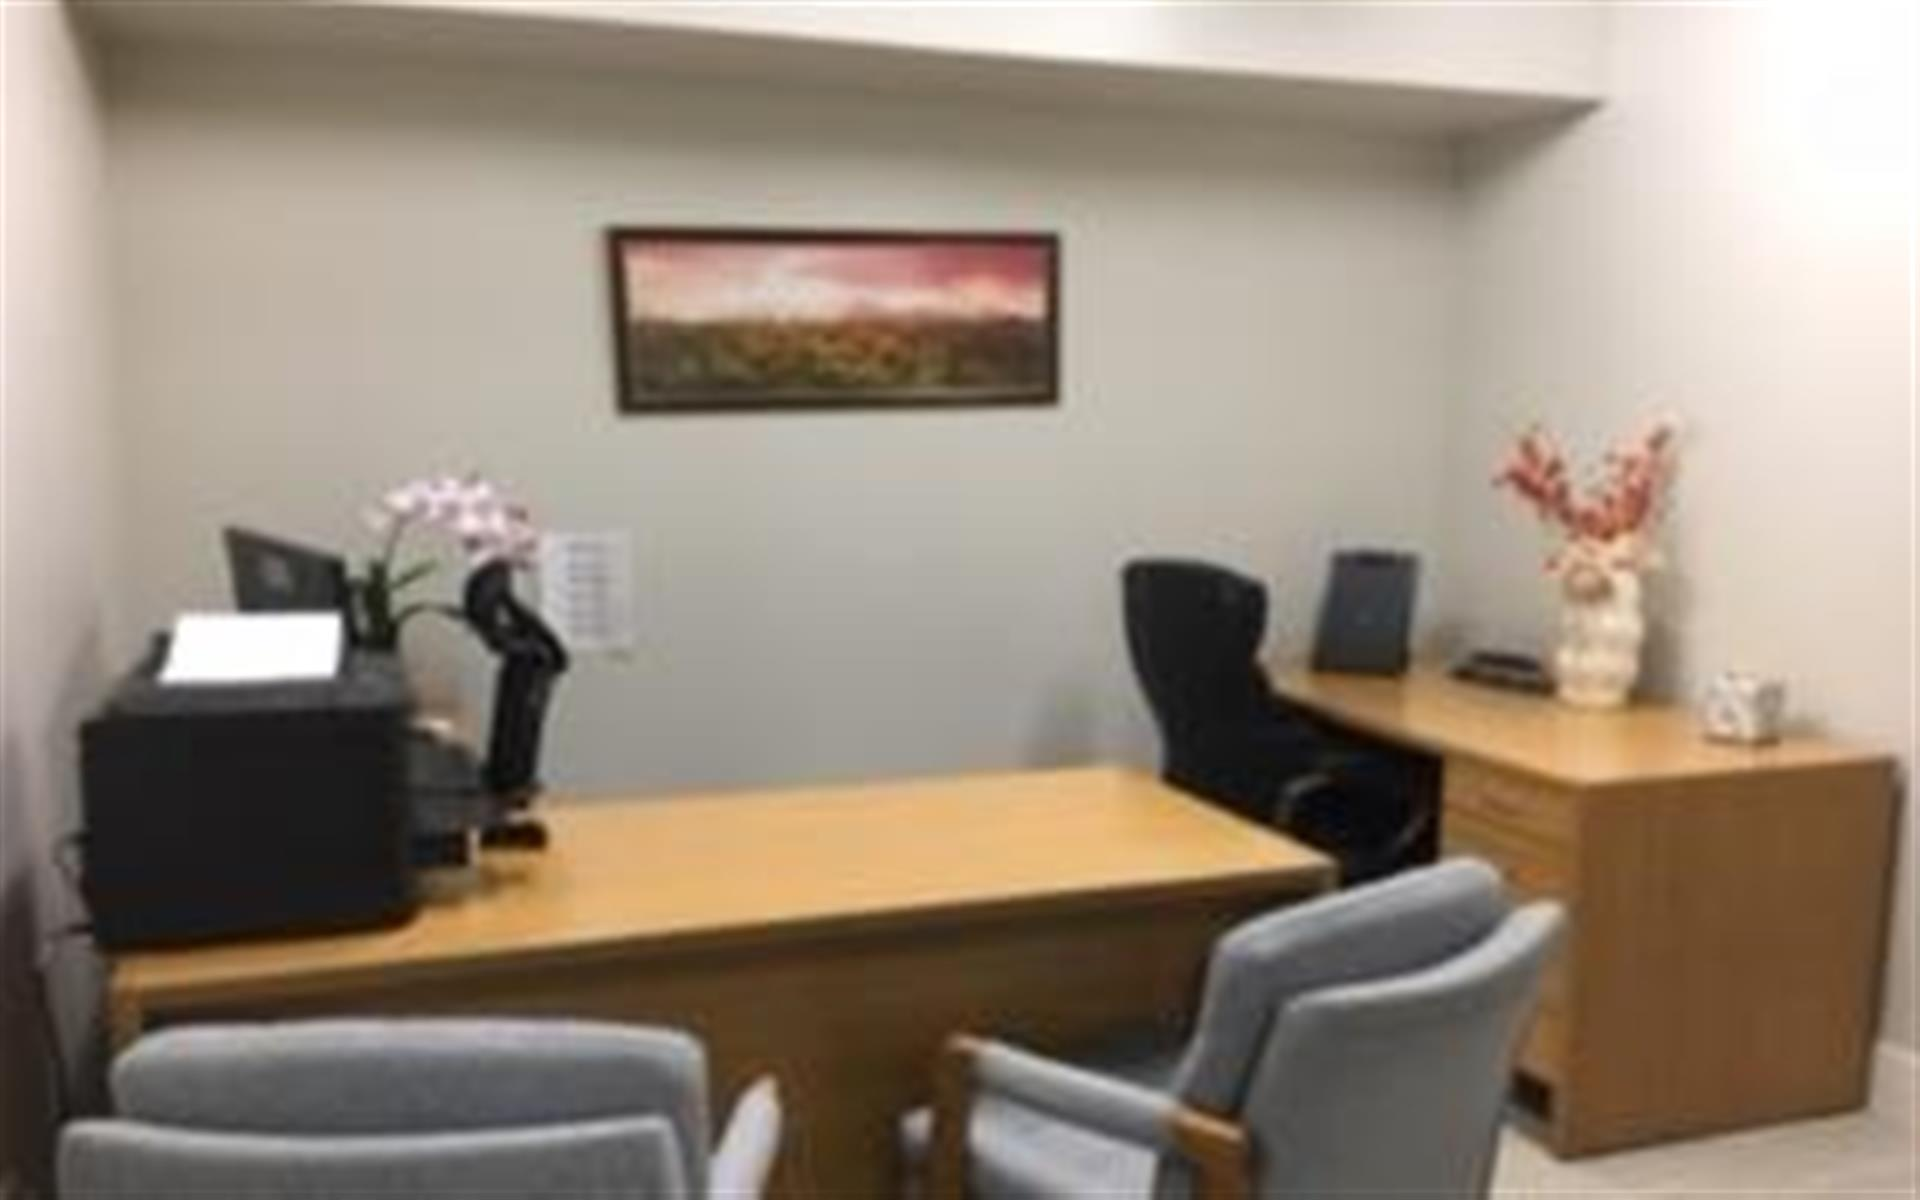 Professional Medical Careers Institute (PMCI) - Office for 2 meeting space for up to 5